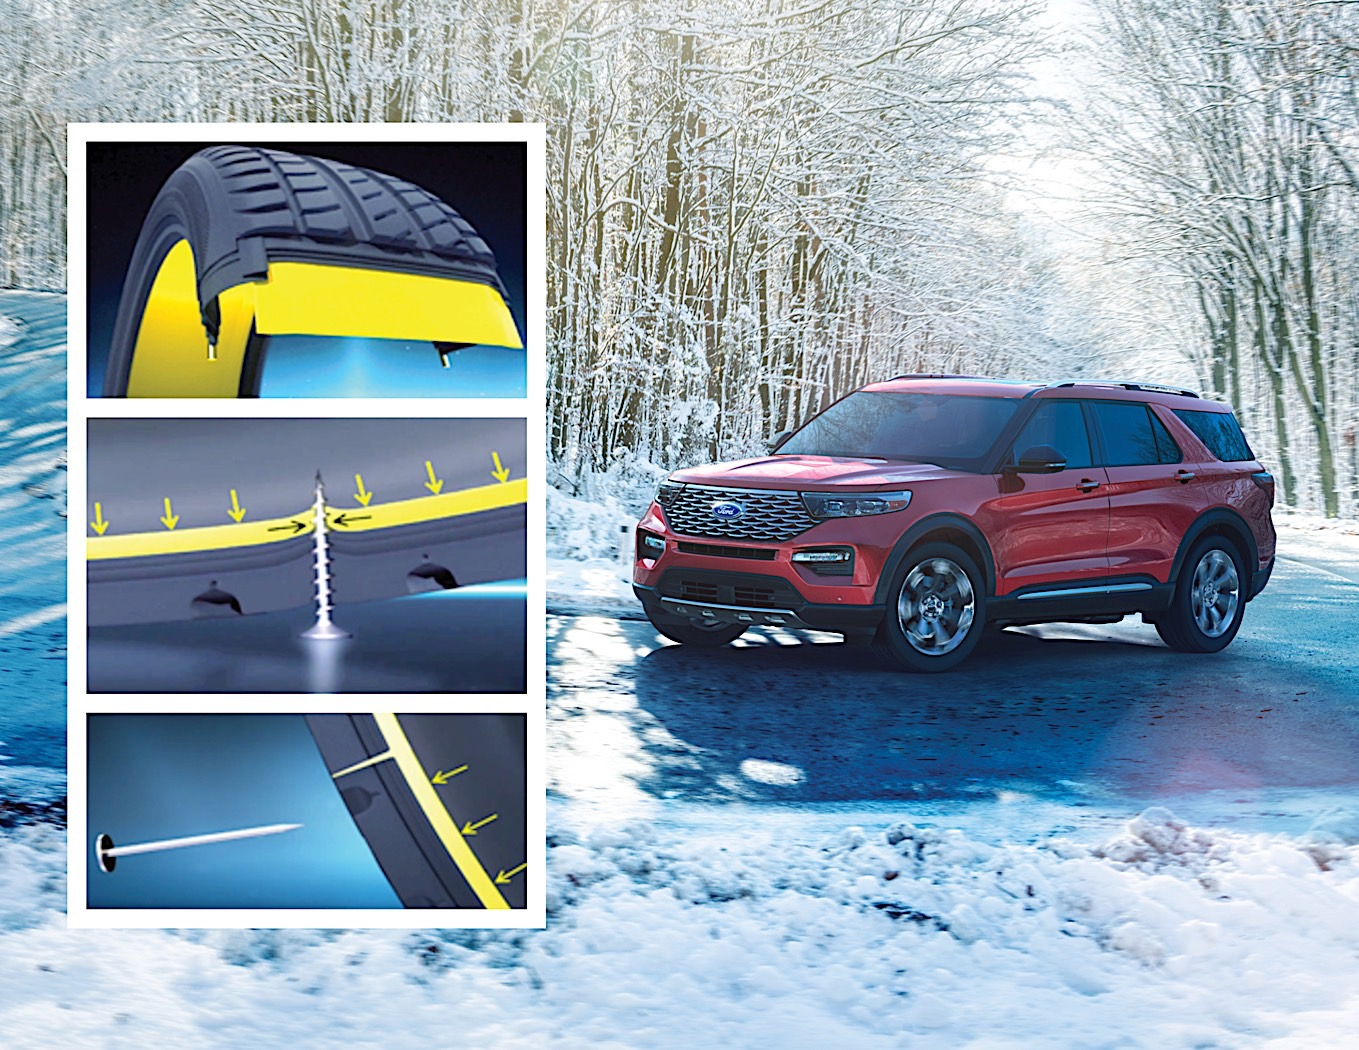 Ford Explorer Features Sci-Fi-Like Self-Healing Tires From Michelin